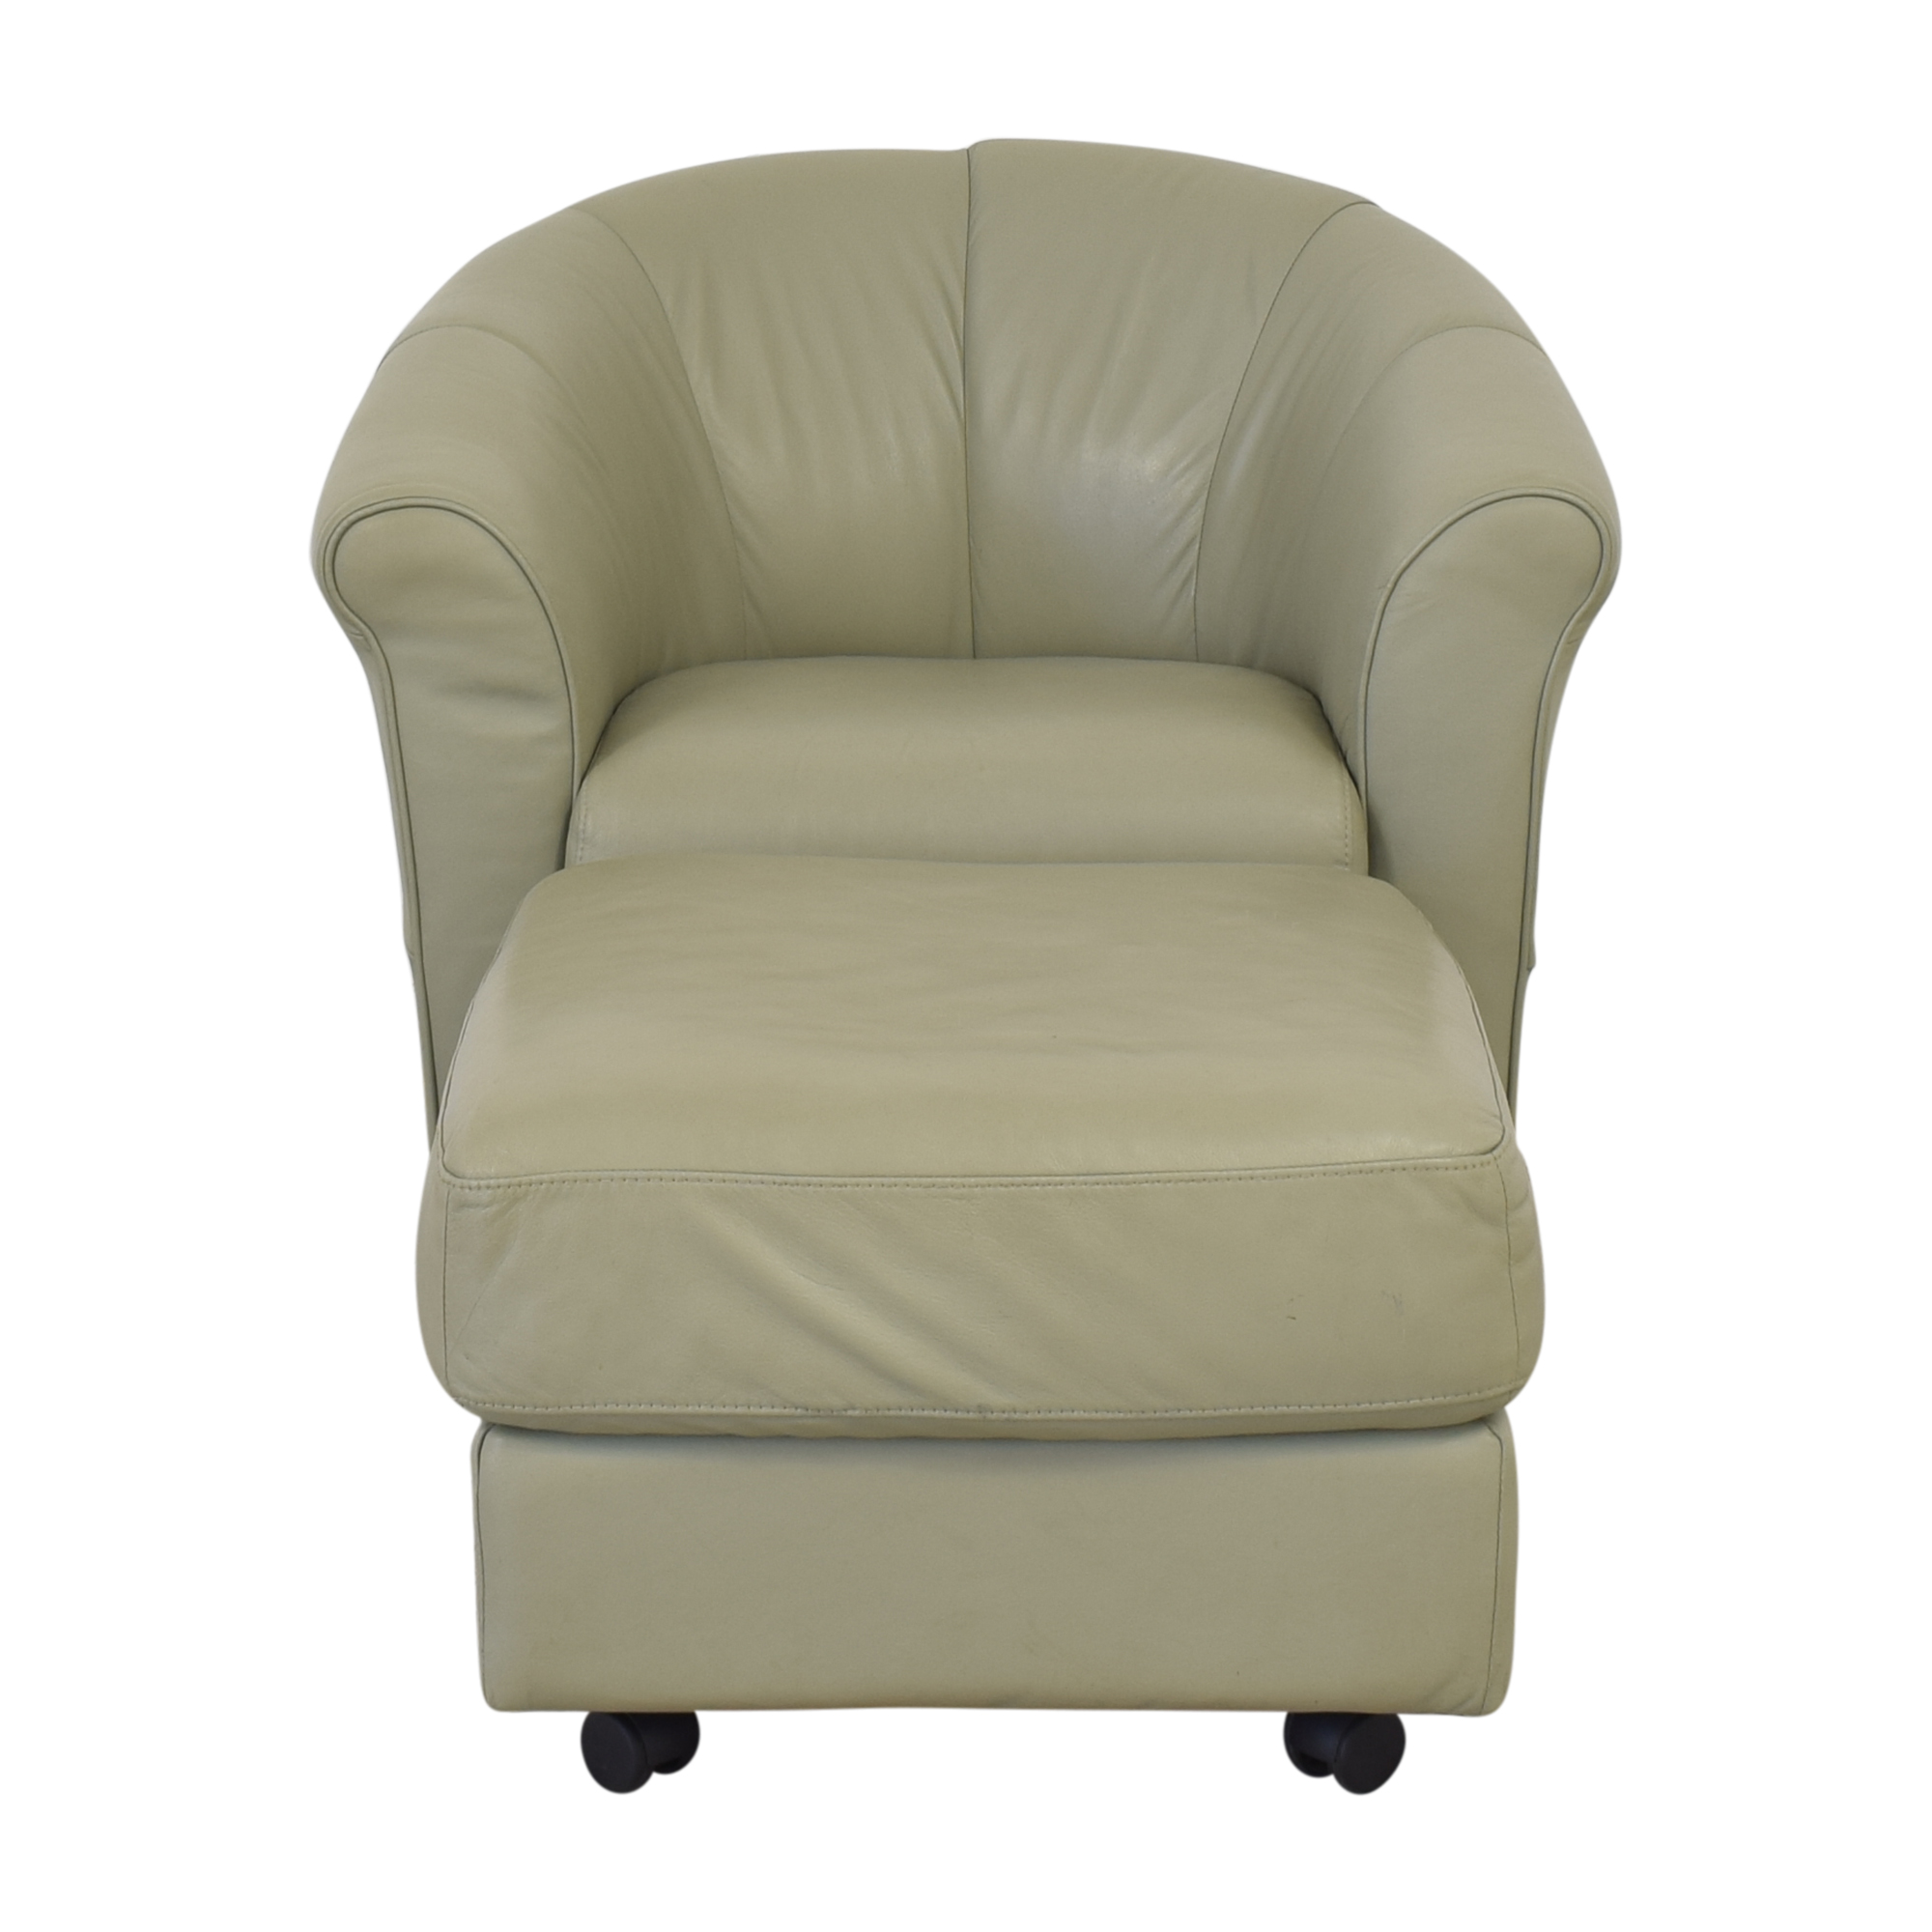 Italsofa Italsofa Swivel Chair and Ottoman ma